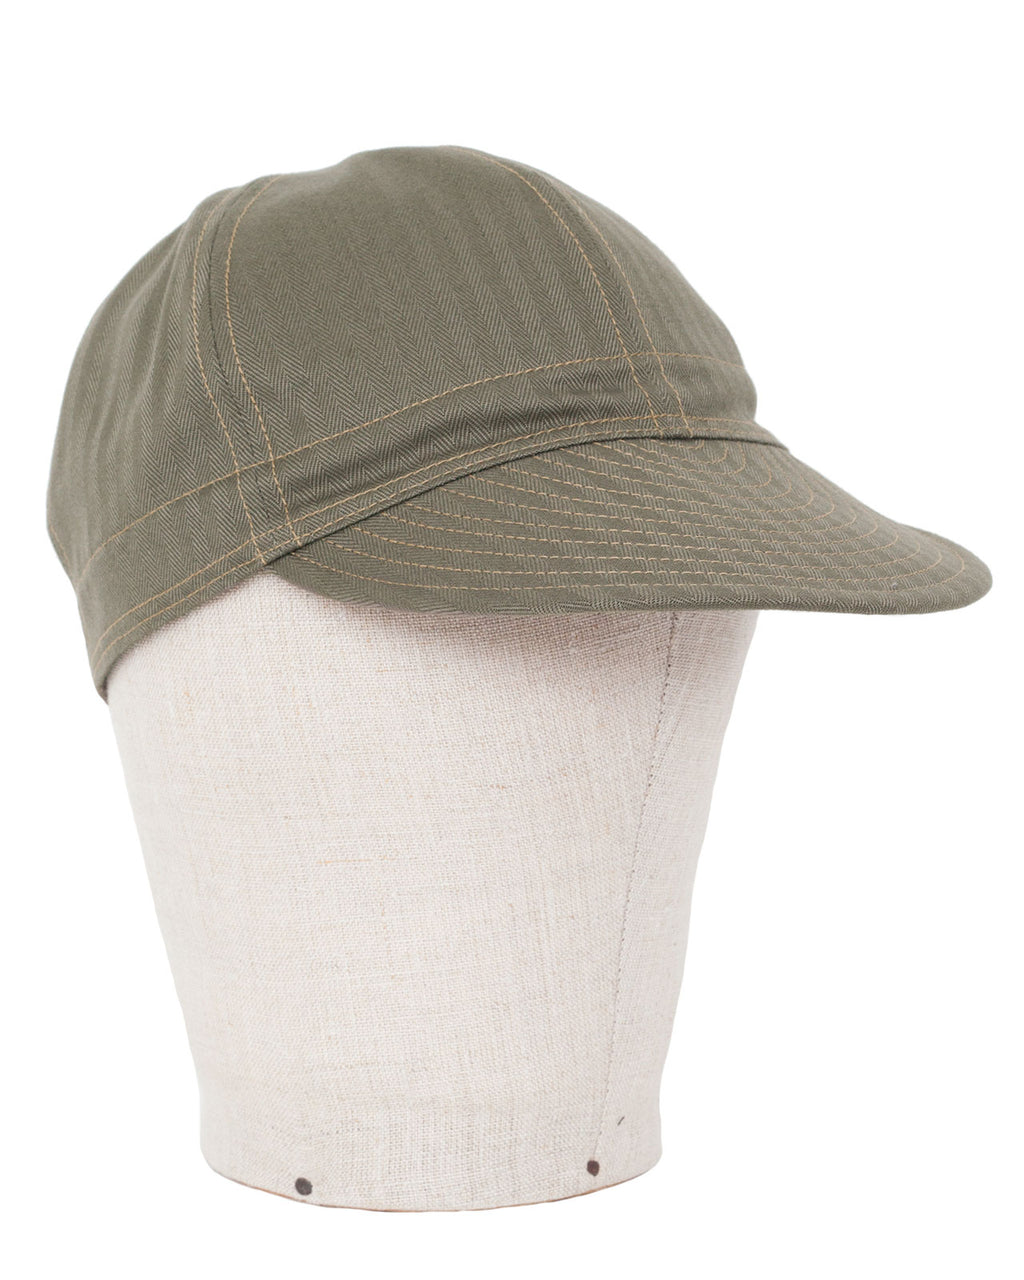 Freewheelers Mechanic Cap, Olive